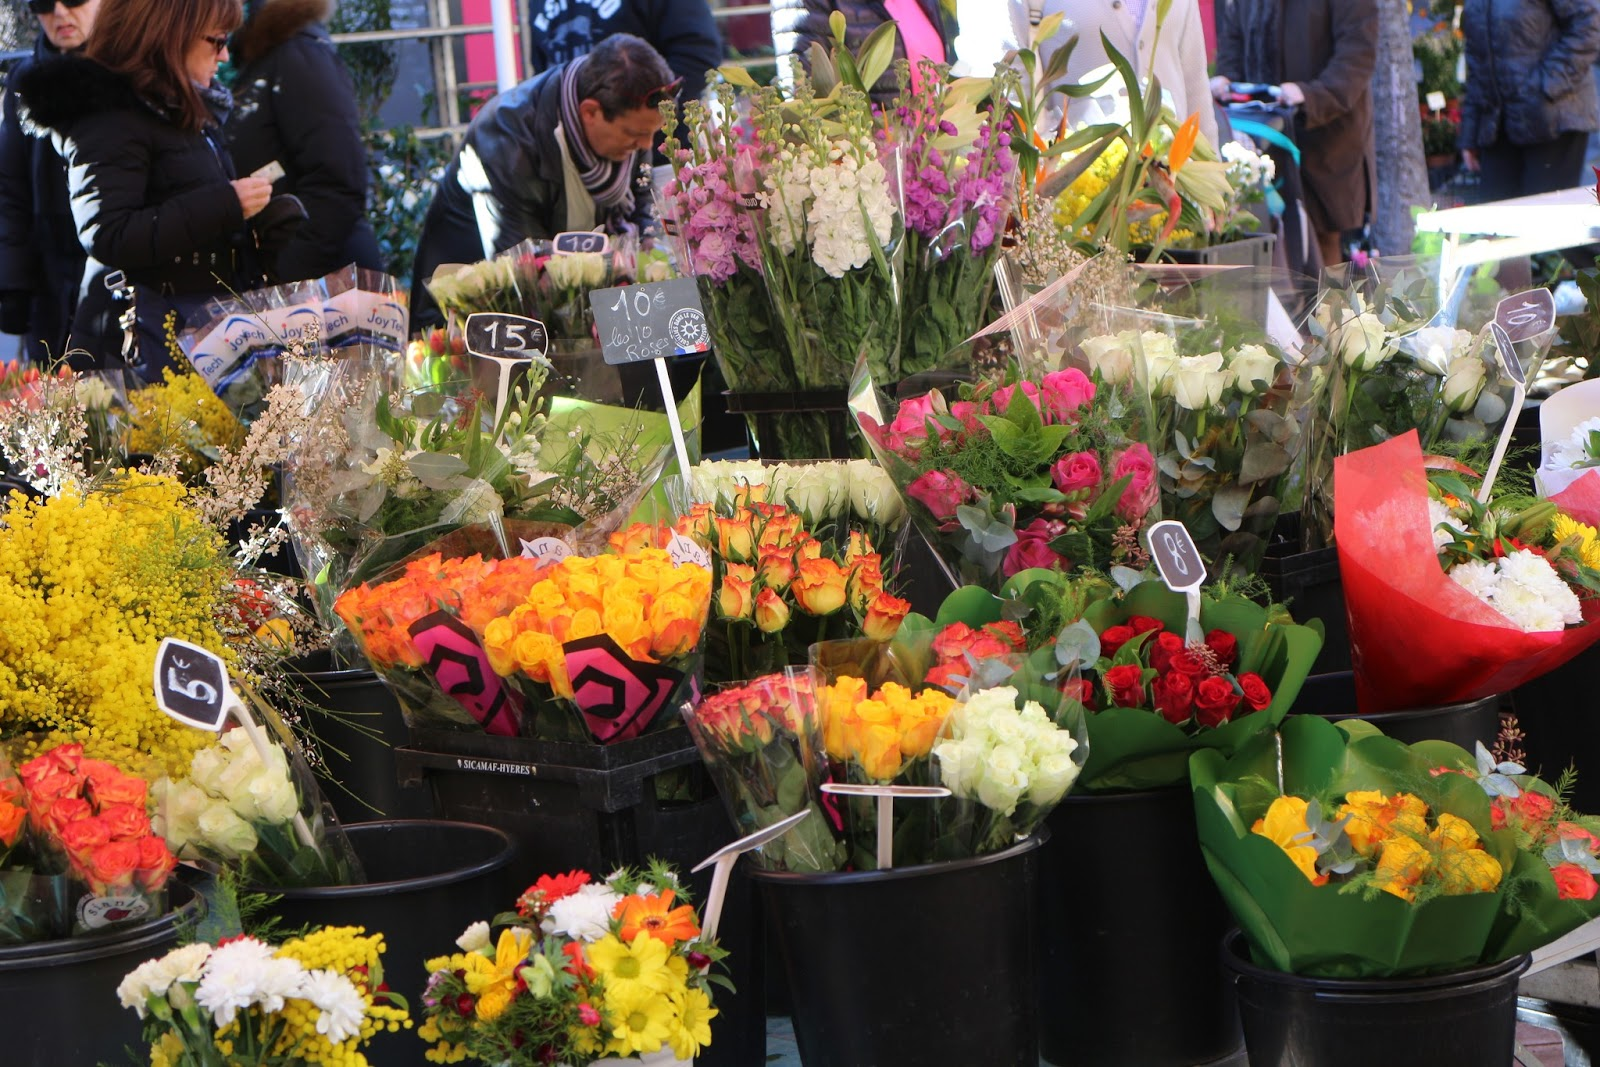 Flowers online 2018 affordable bouquets singapore flowers online affordable bouquets singapore these flowers are very beautiful here we offer a collection of beautiful cute charming funny and unique flower images izmirmasajfo